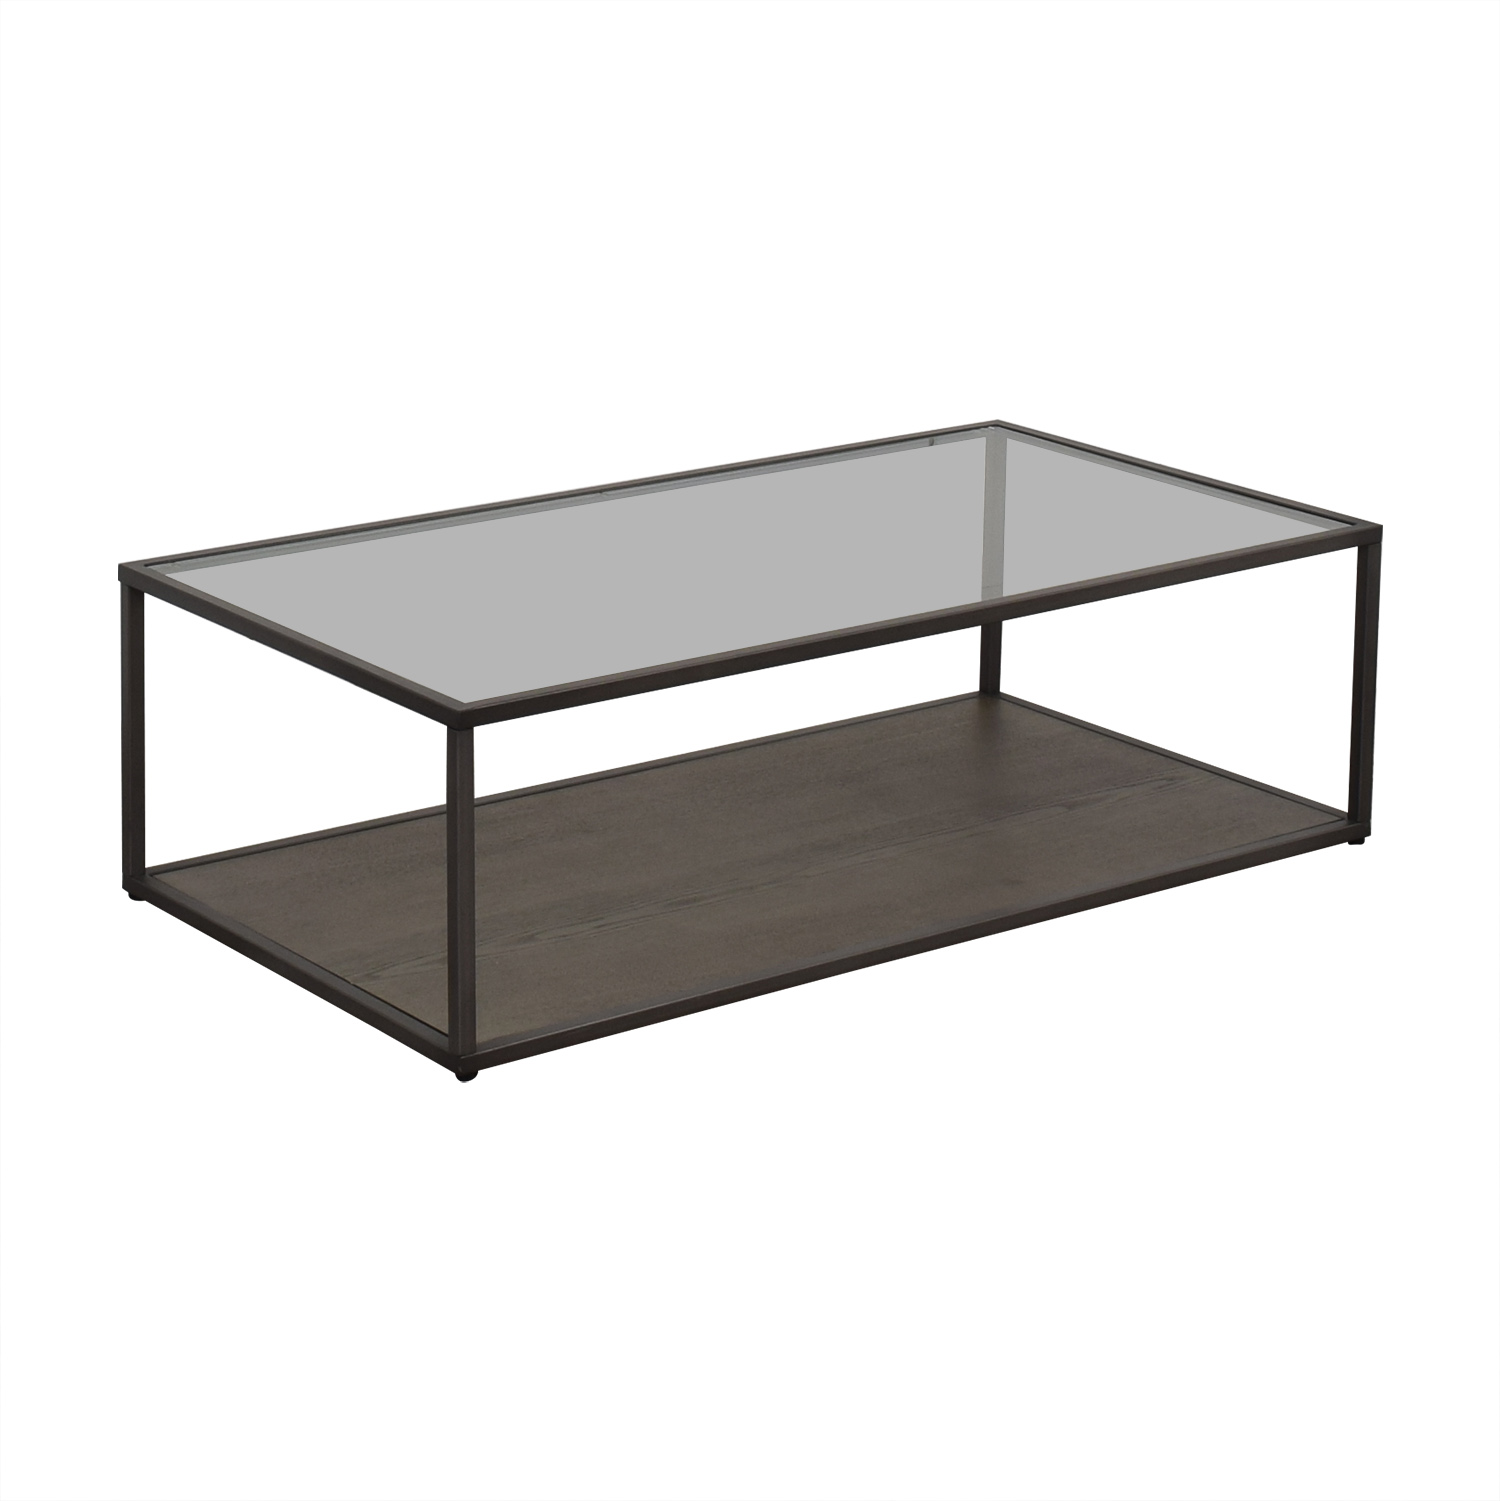 buy Crate & Barrel Crate & Barrel Switch Coffee Table online